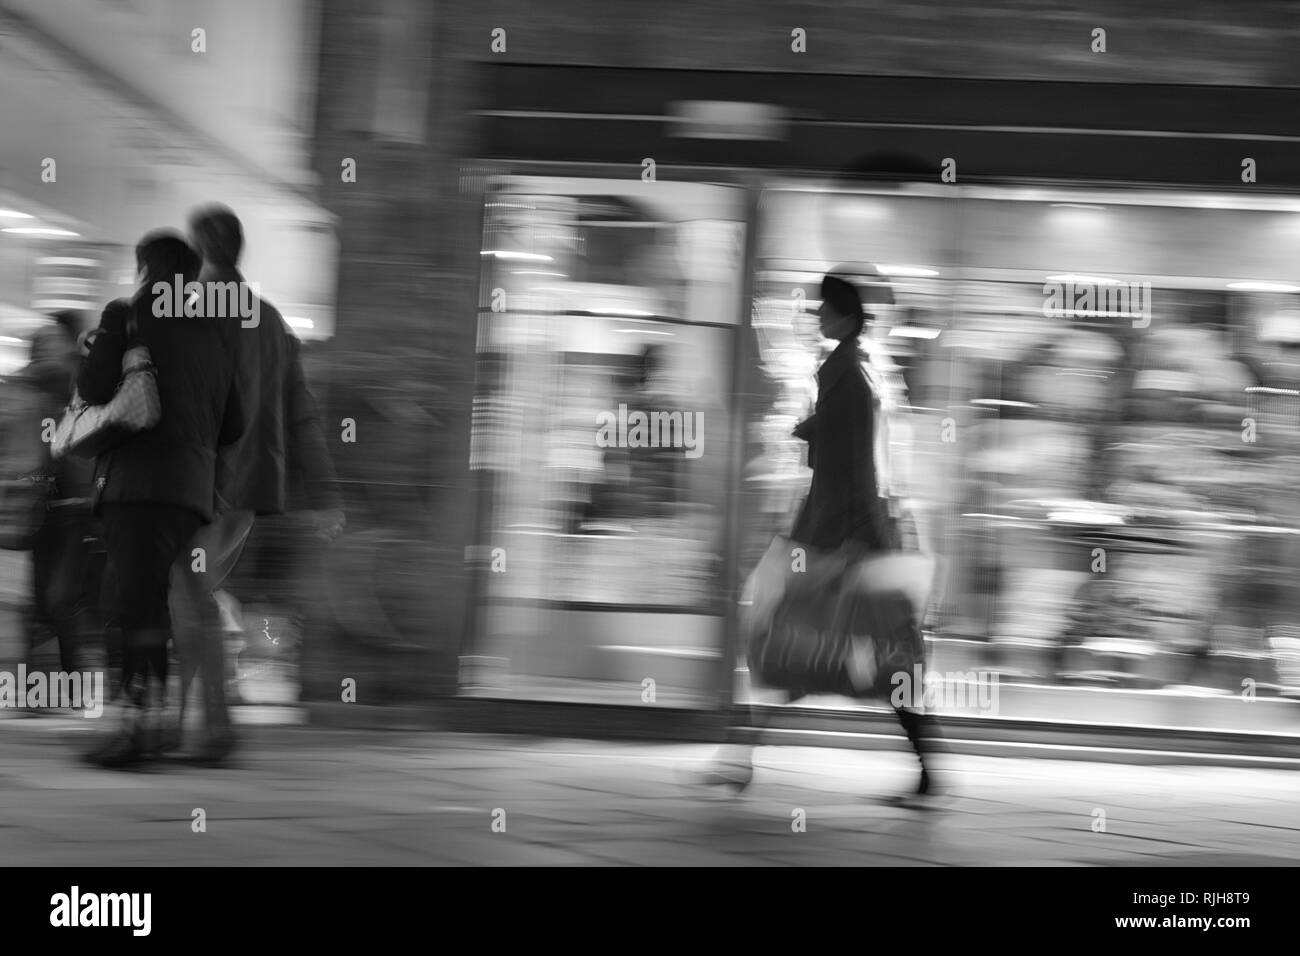 Shopping in Venice at night time, illuminated shops, blurred photograph, black and white, Venetia, Italy, Southern Europe - Stock Image